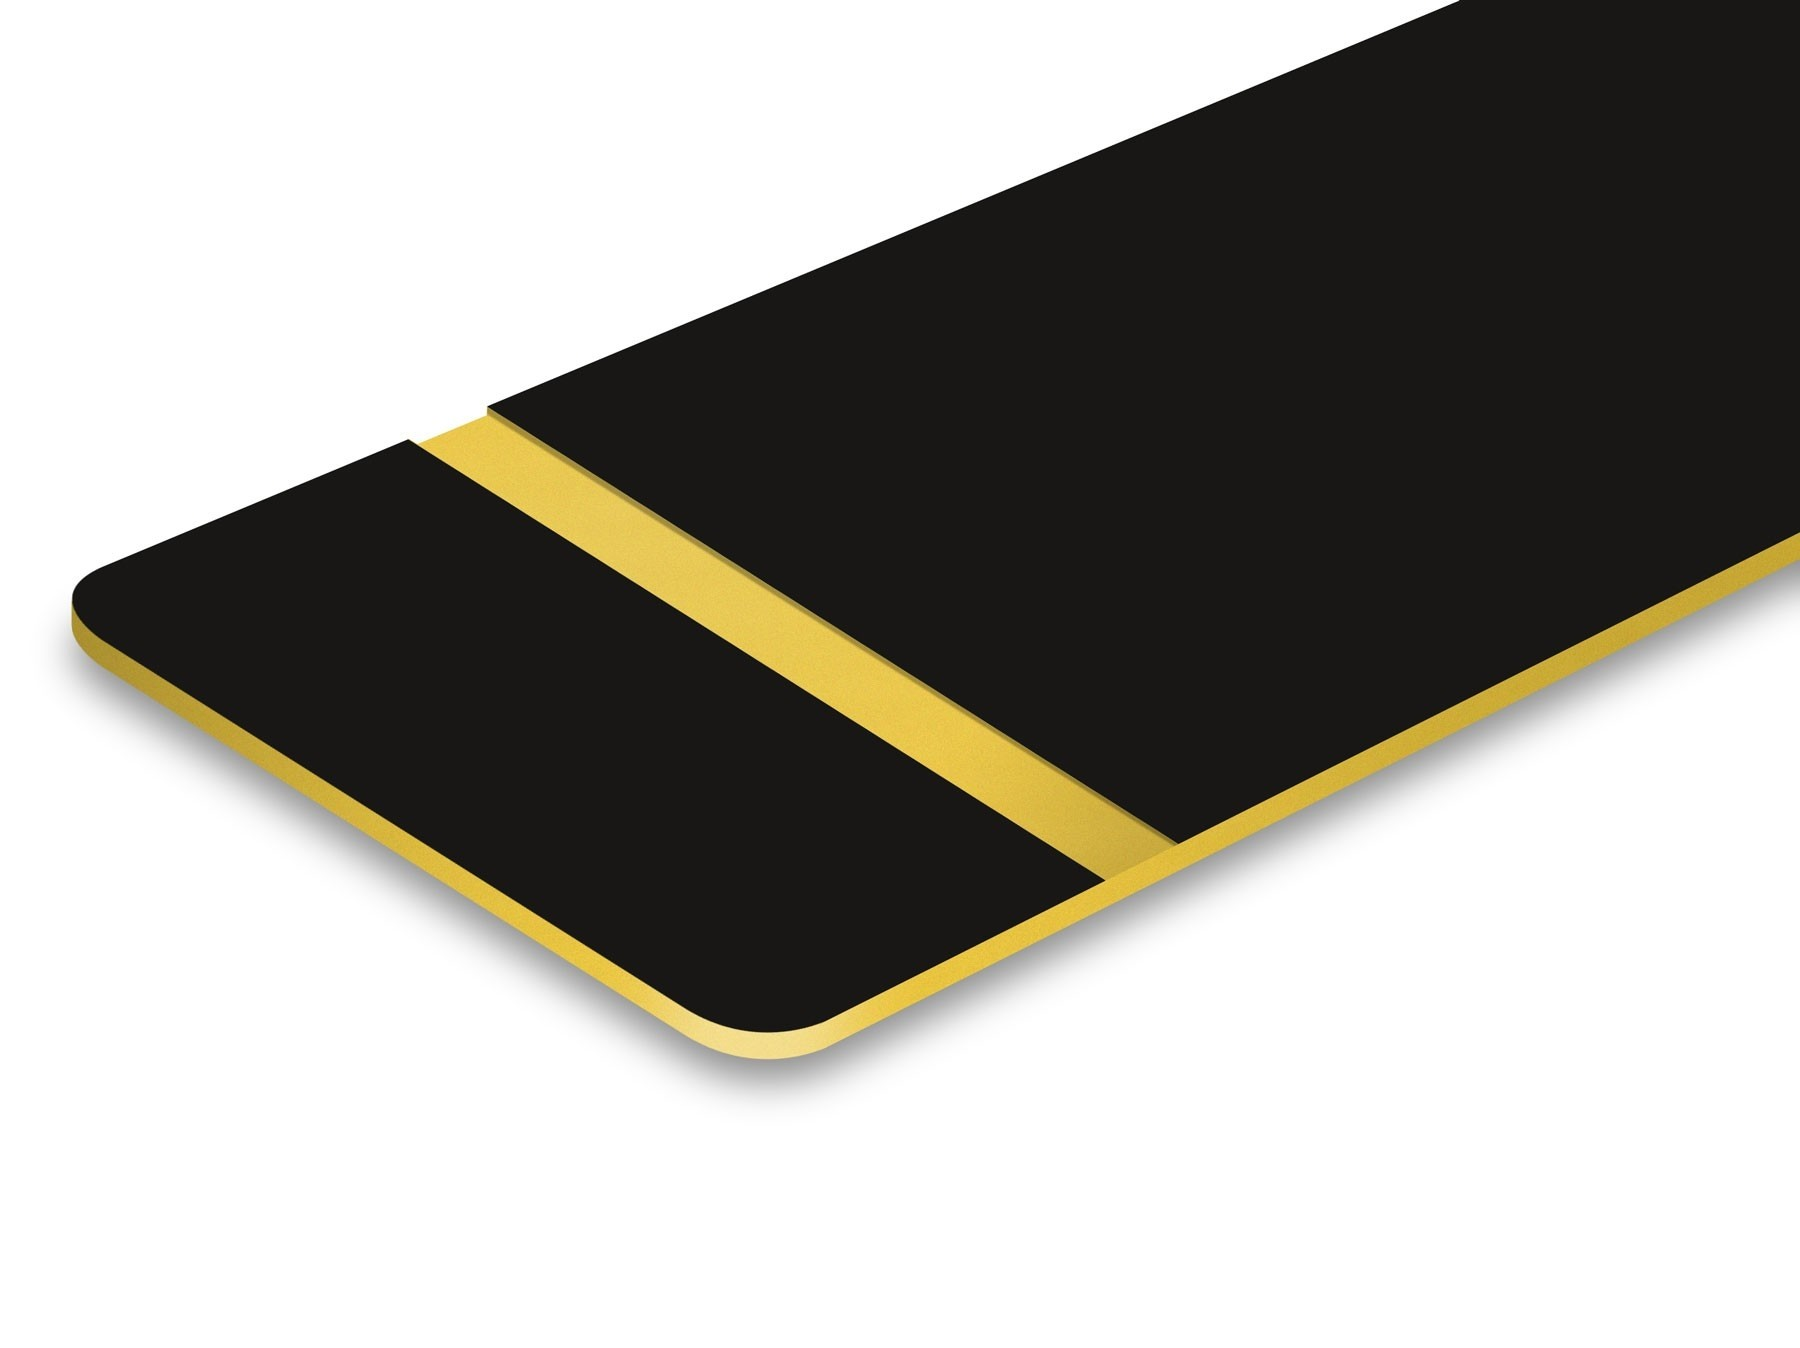 TroLase Thins, Matte Black/Gold, 2ply, 0.5 mm